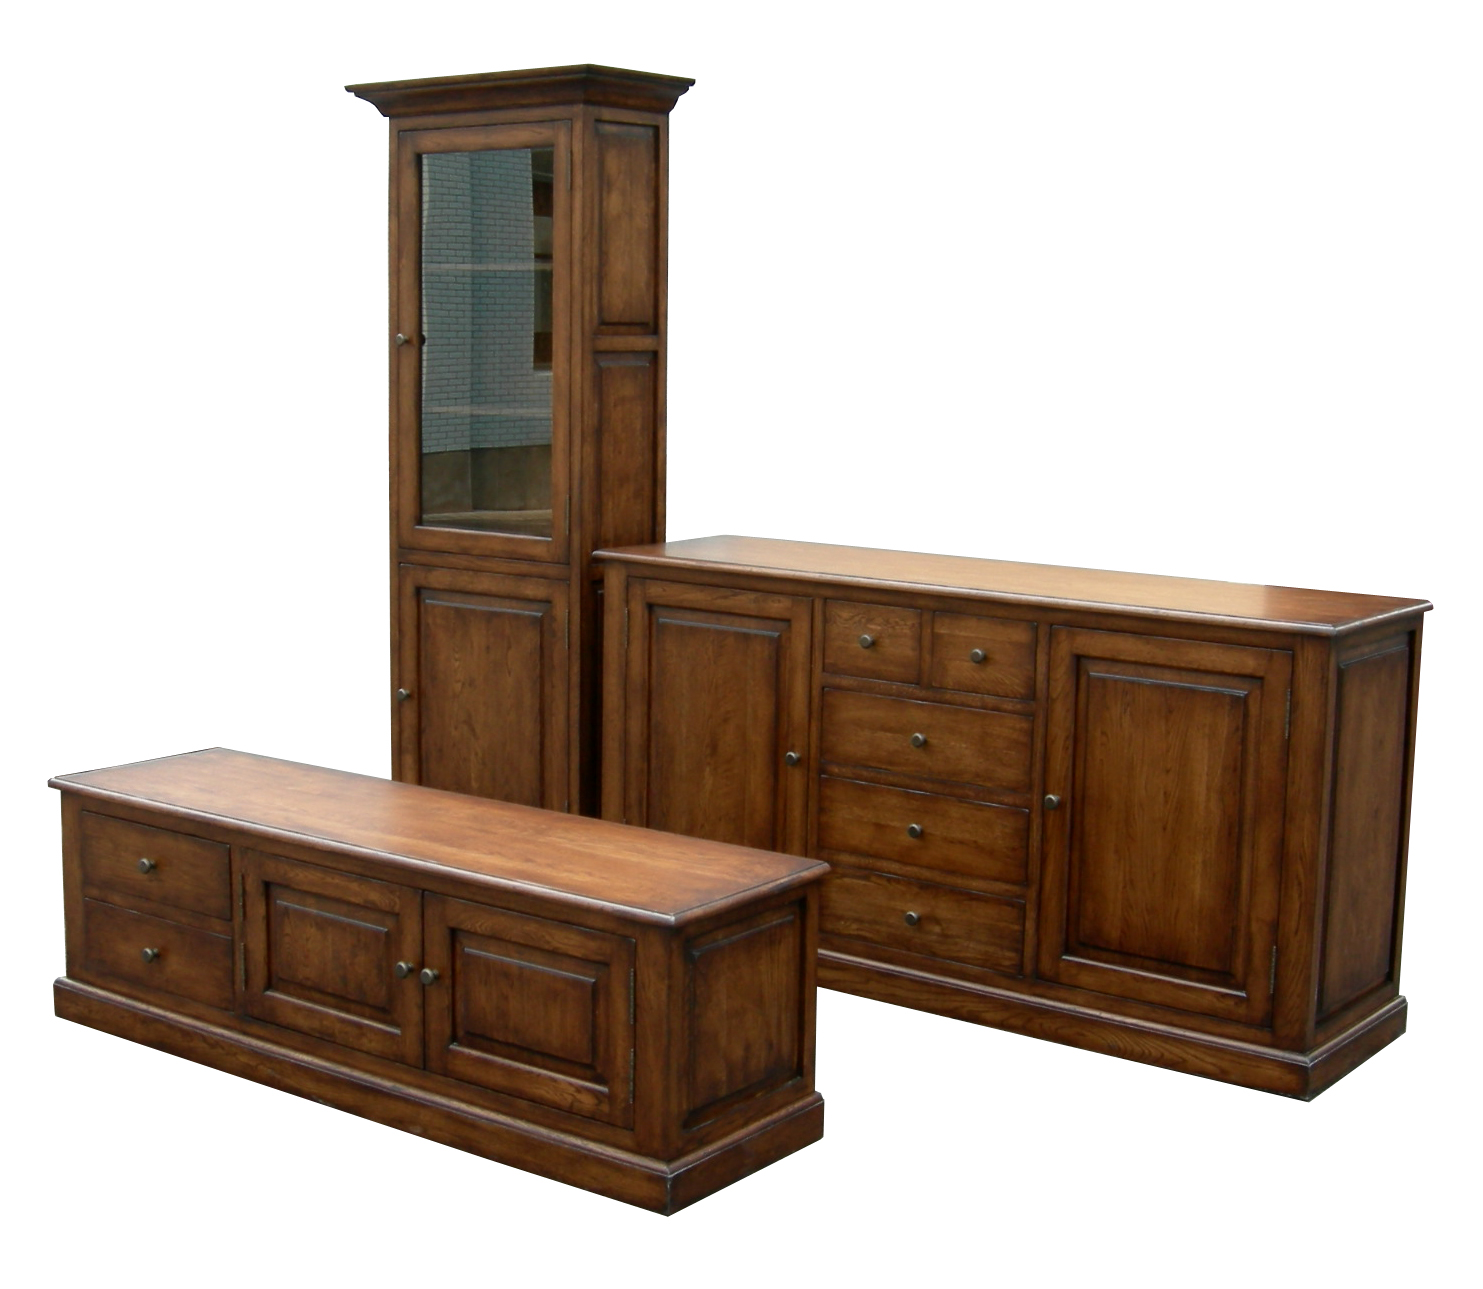 wooden furniture designs wooden furniture shops in